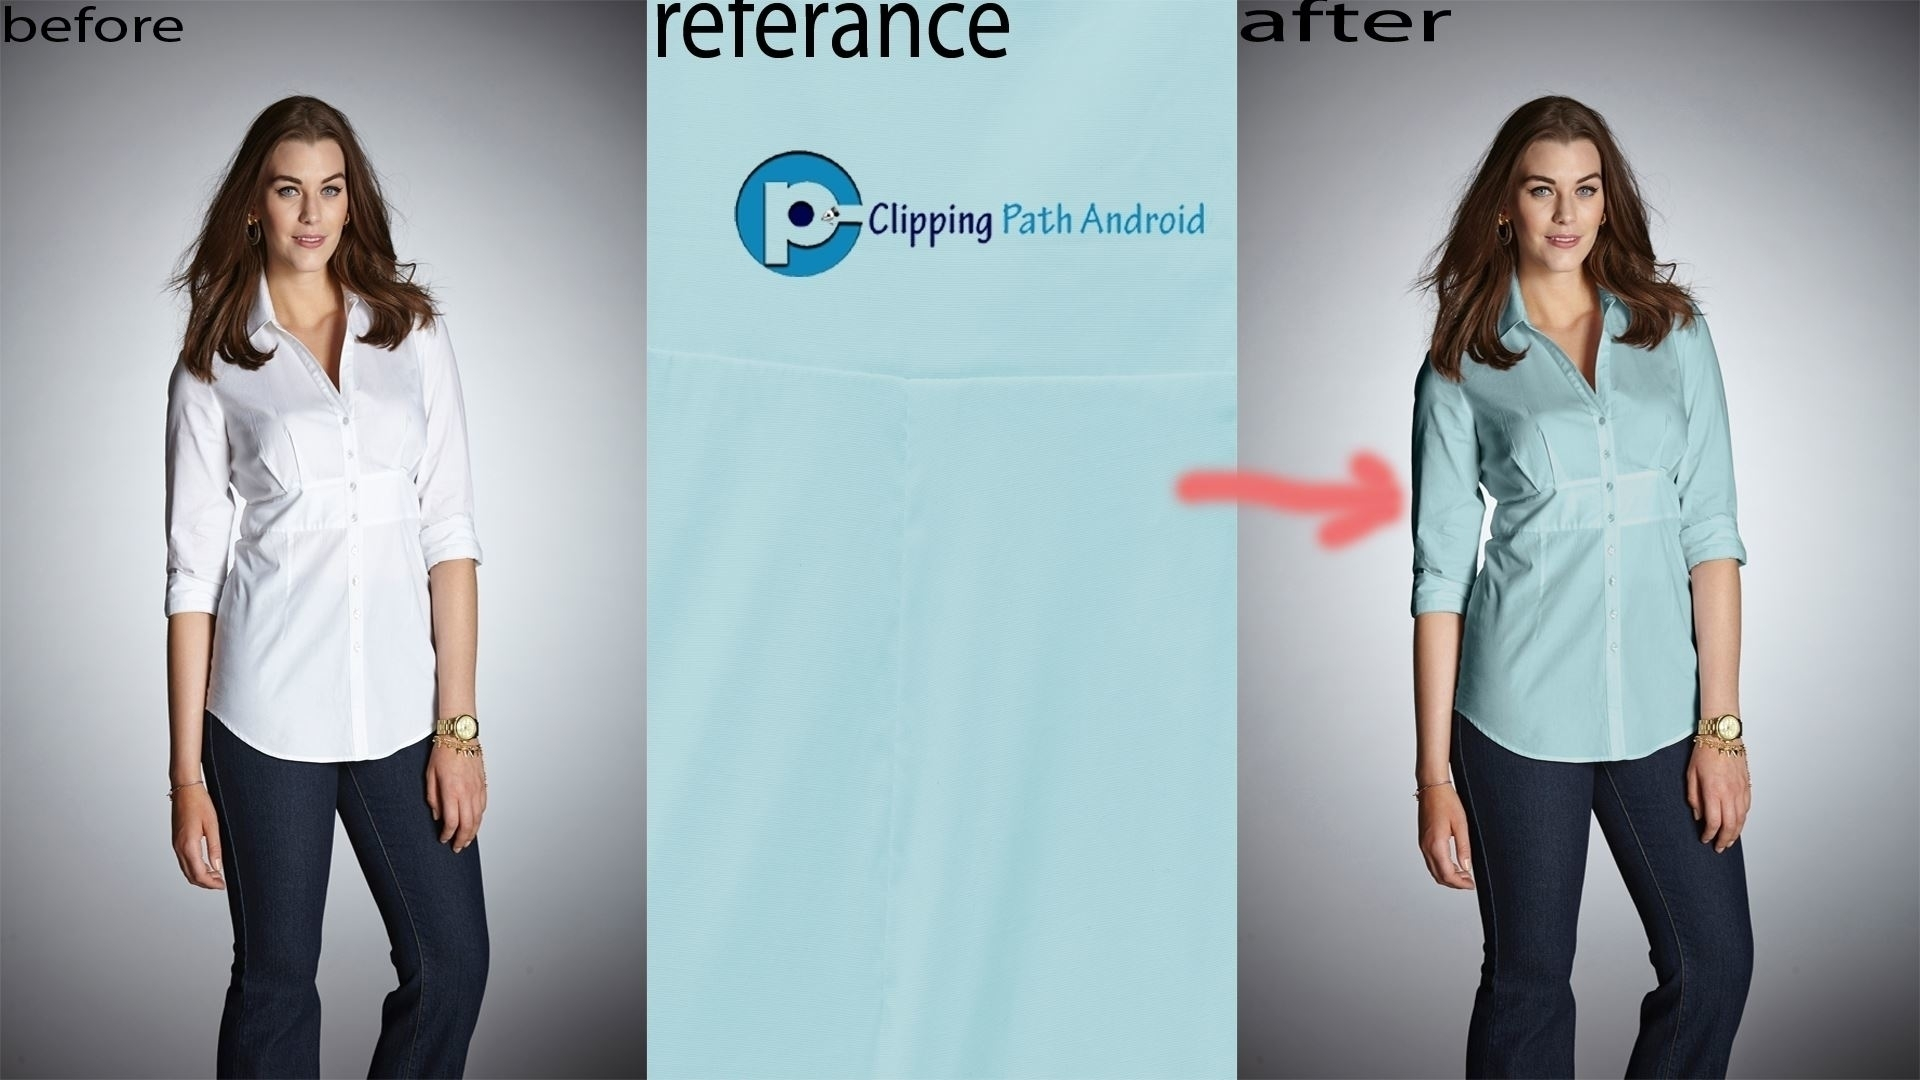 Clipping Path Android (@clippingpathandroid) Cover Image